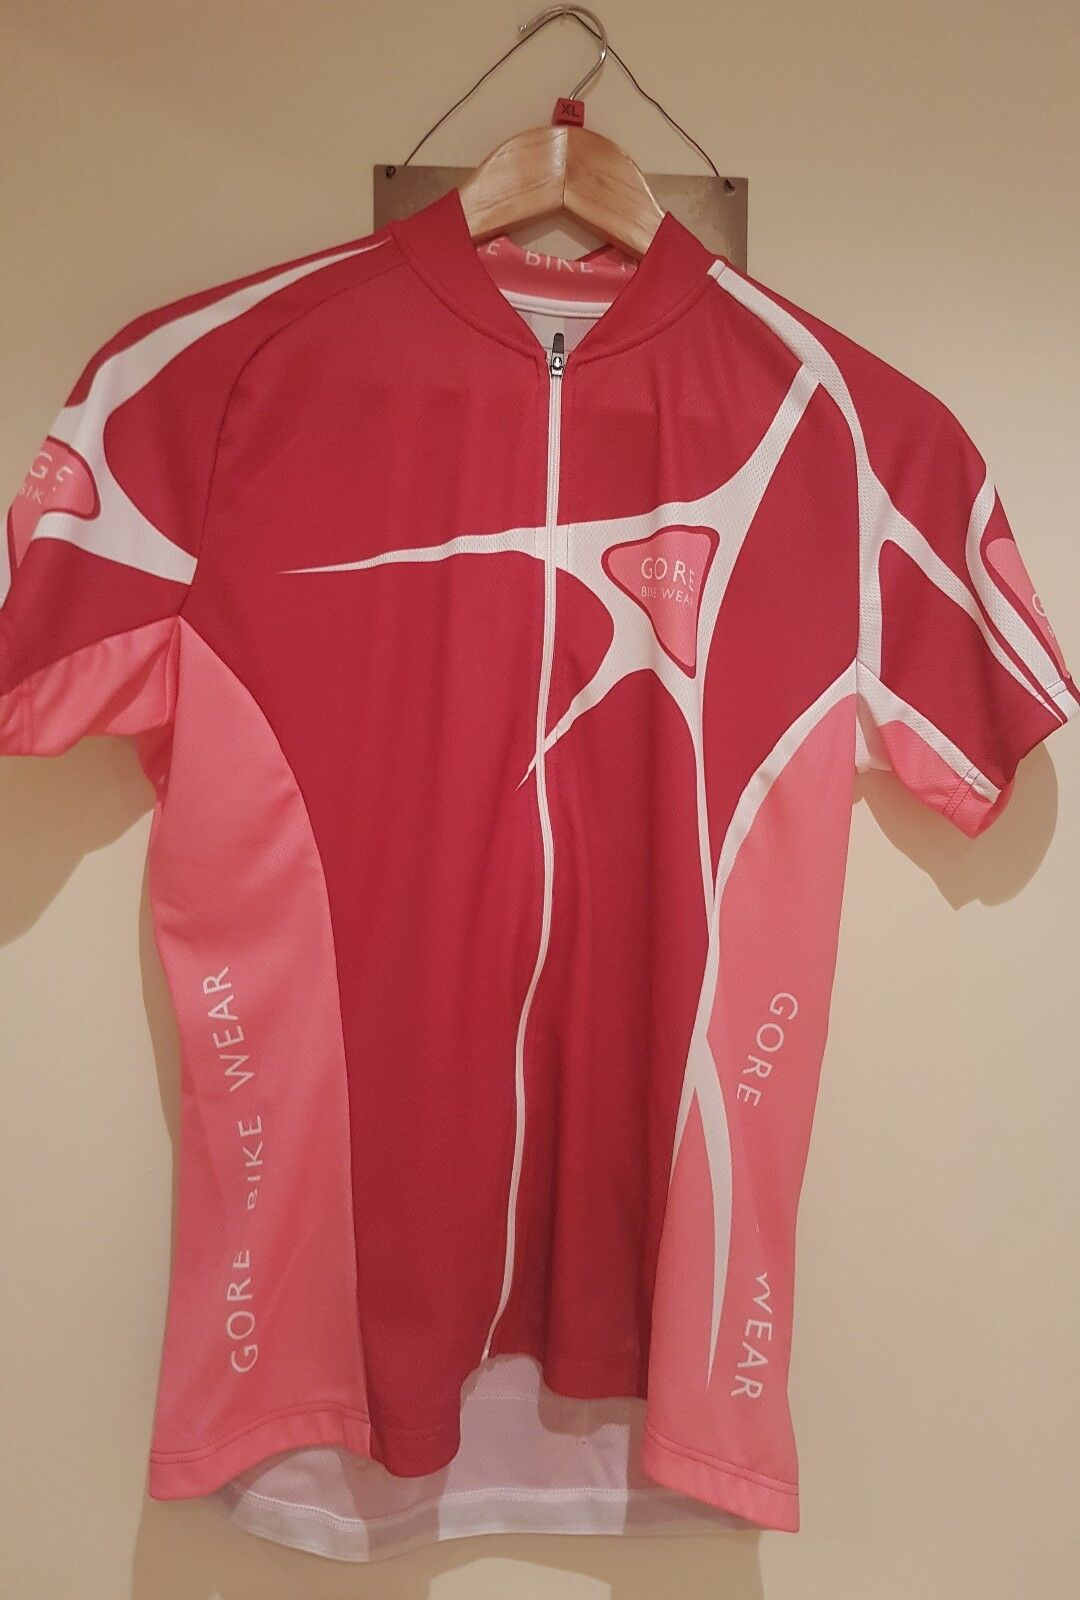 Gore Element Lady Adrenaline cycle jersey